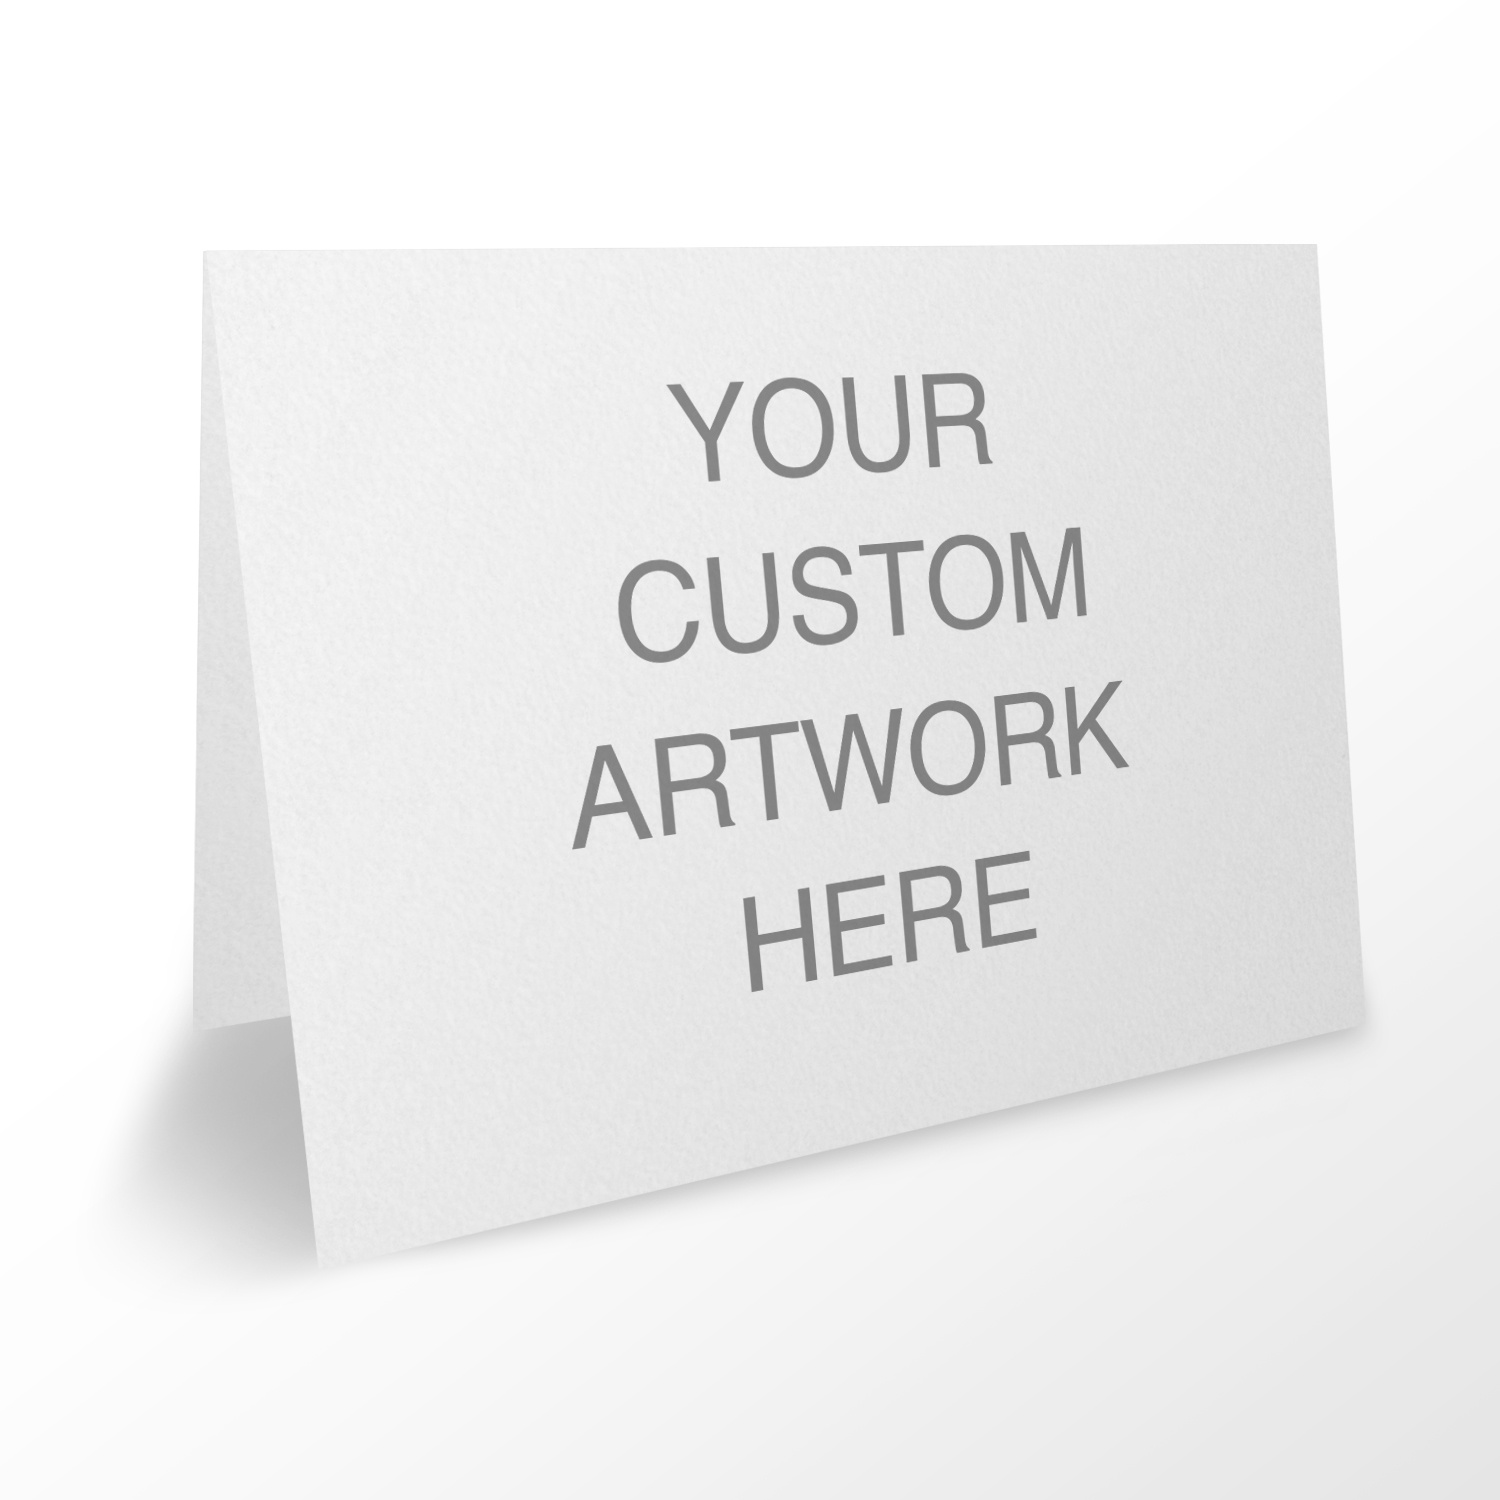 """Card Size:4 7/8"""" x 3 1/2"""" Folded, Comes with white envelopes."""